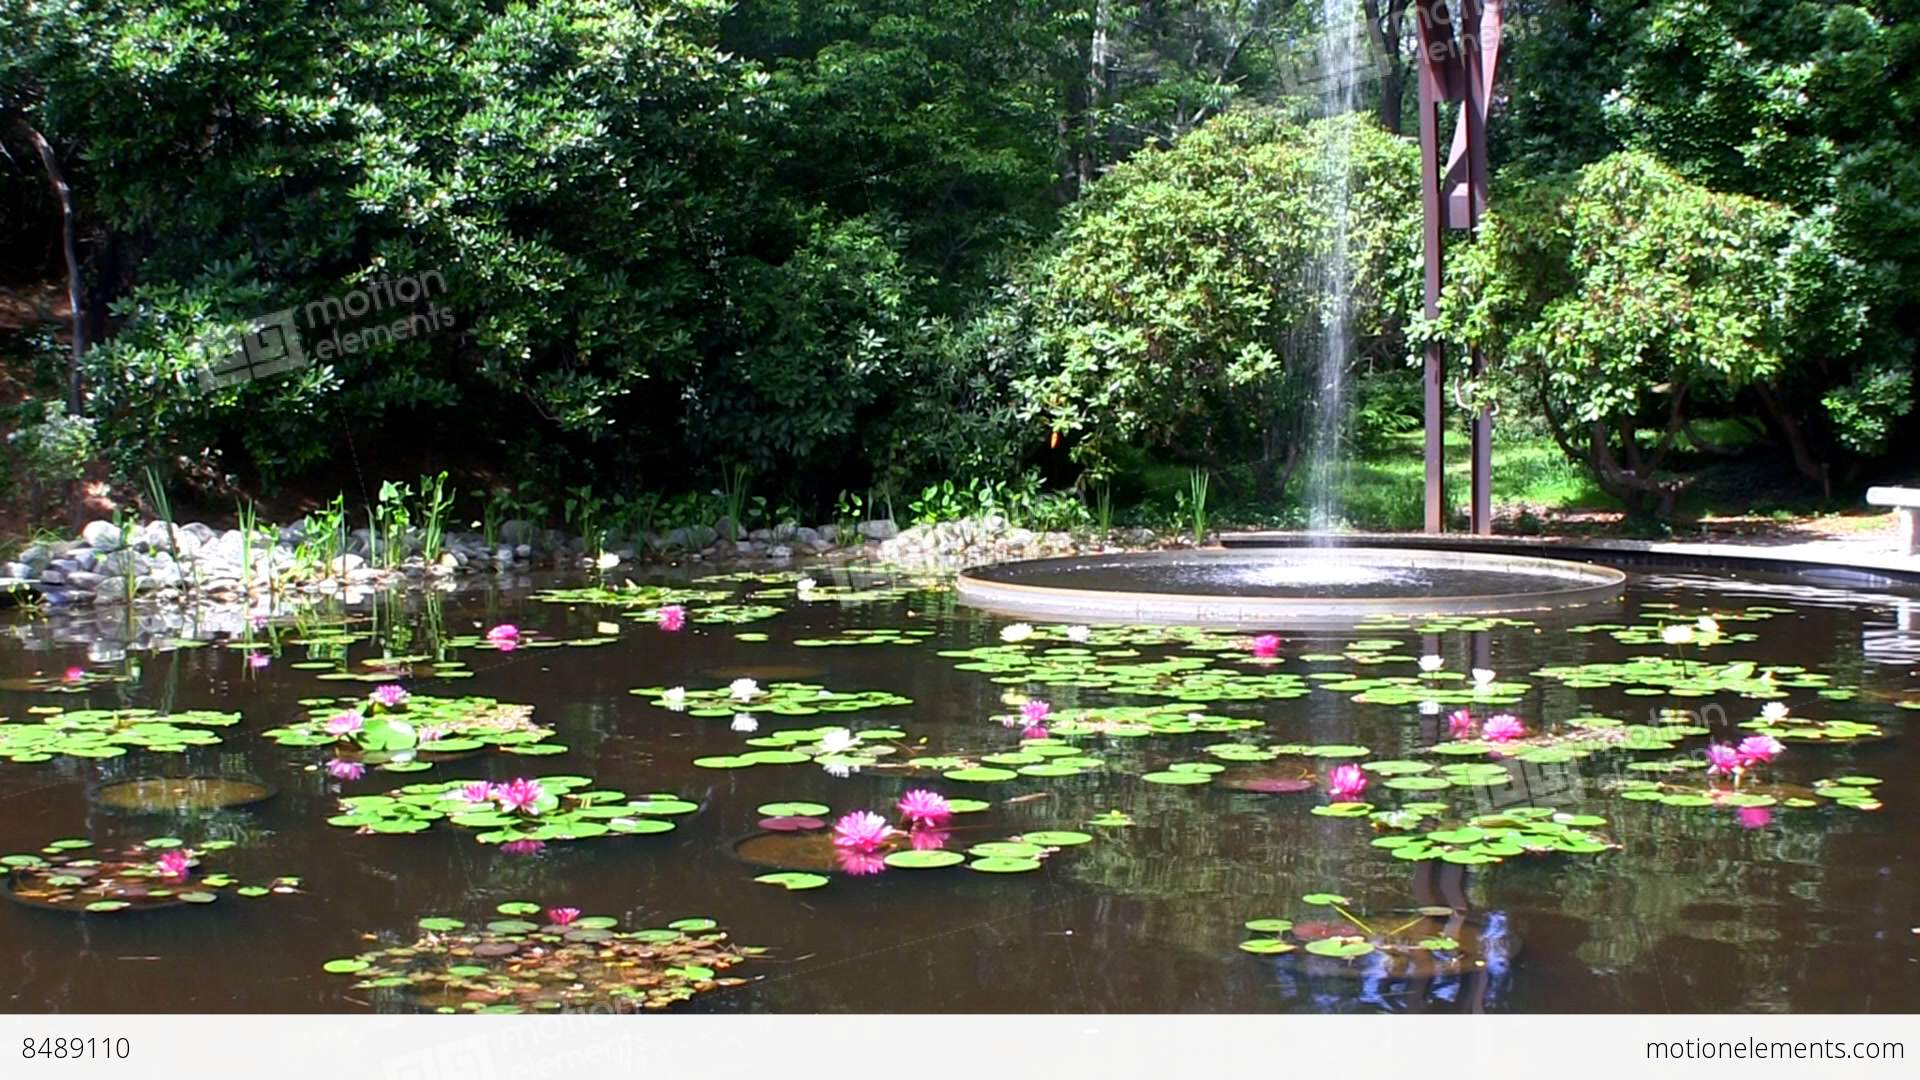 Flume fountain waterfall lands in oval pool of lotus flowers at flume fountain waterfall lands in oval pool of lotus stock video footage izmirmasajfo